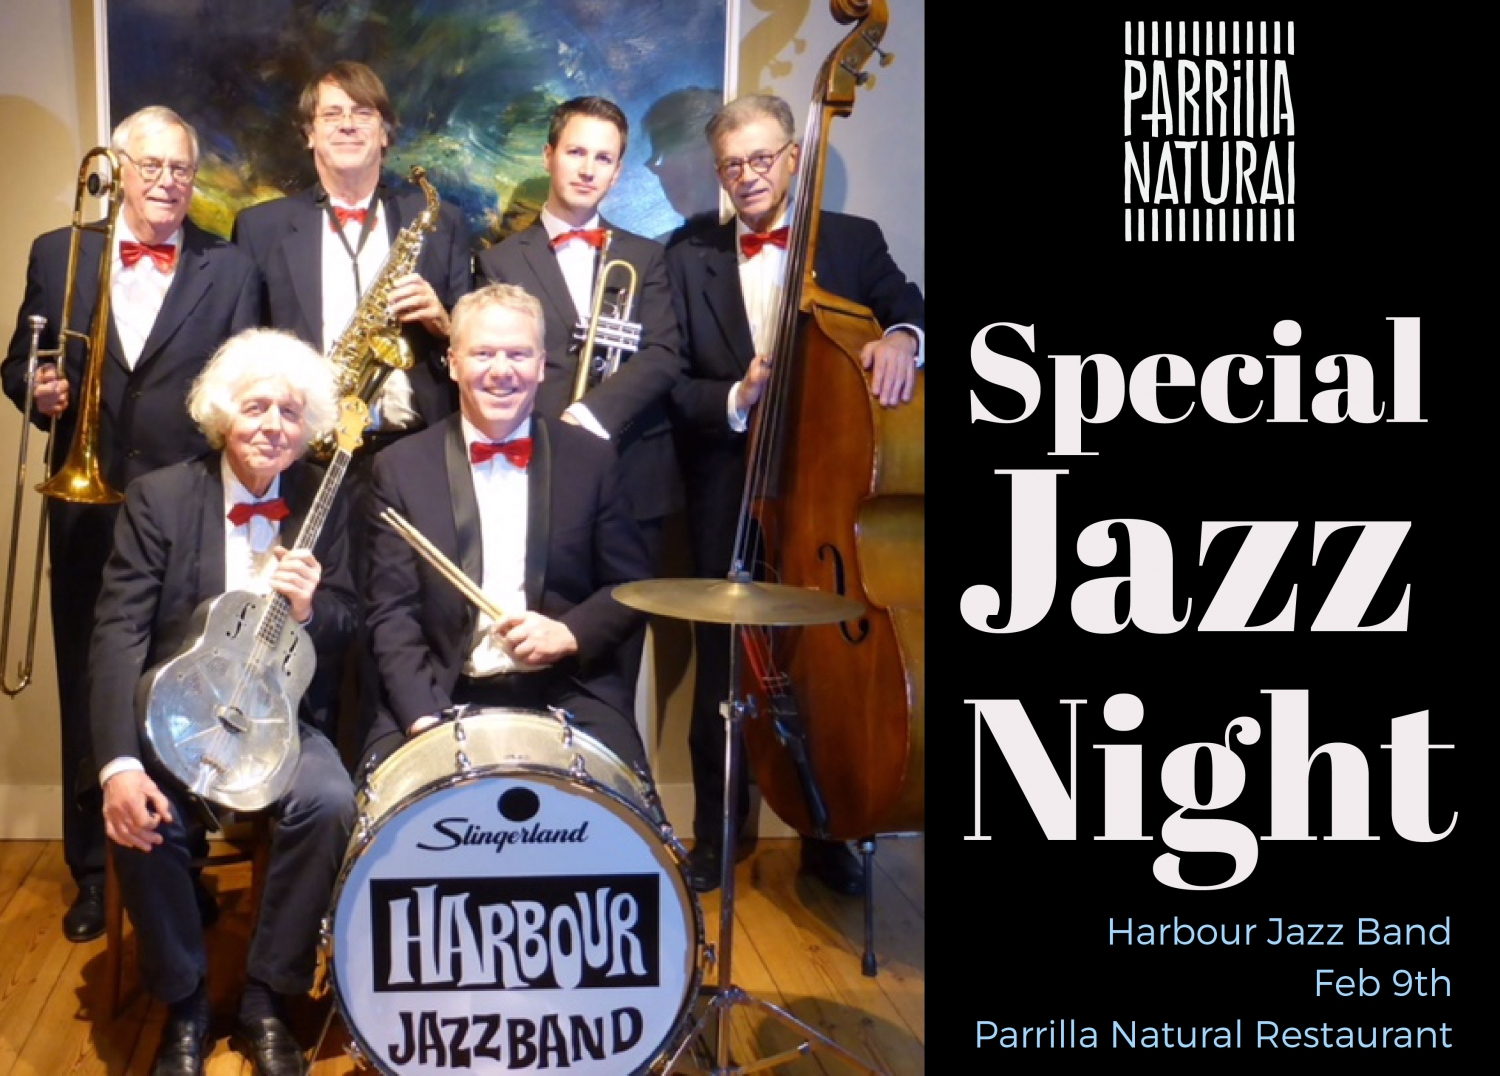 Charity Jazz Night at Parrilla Natural